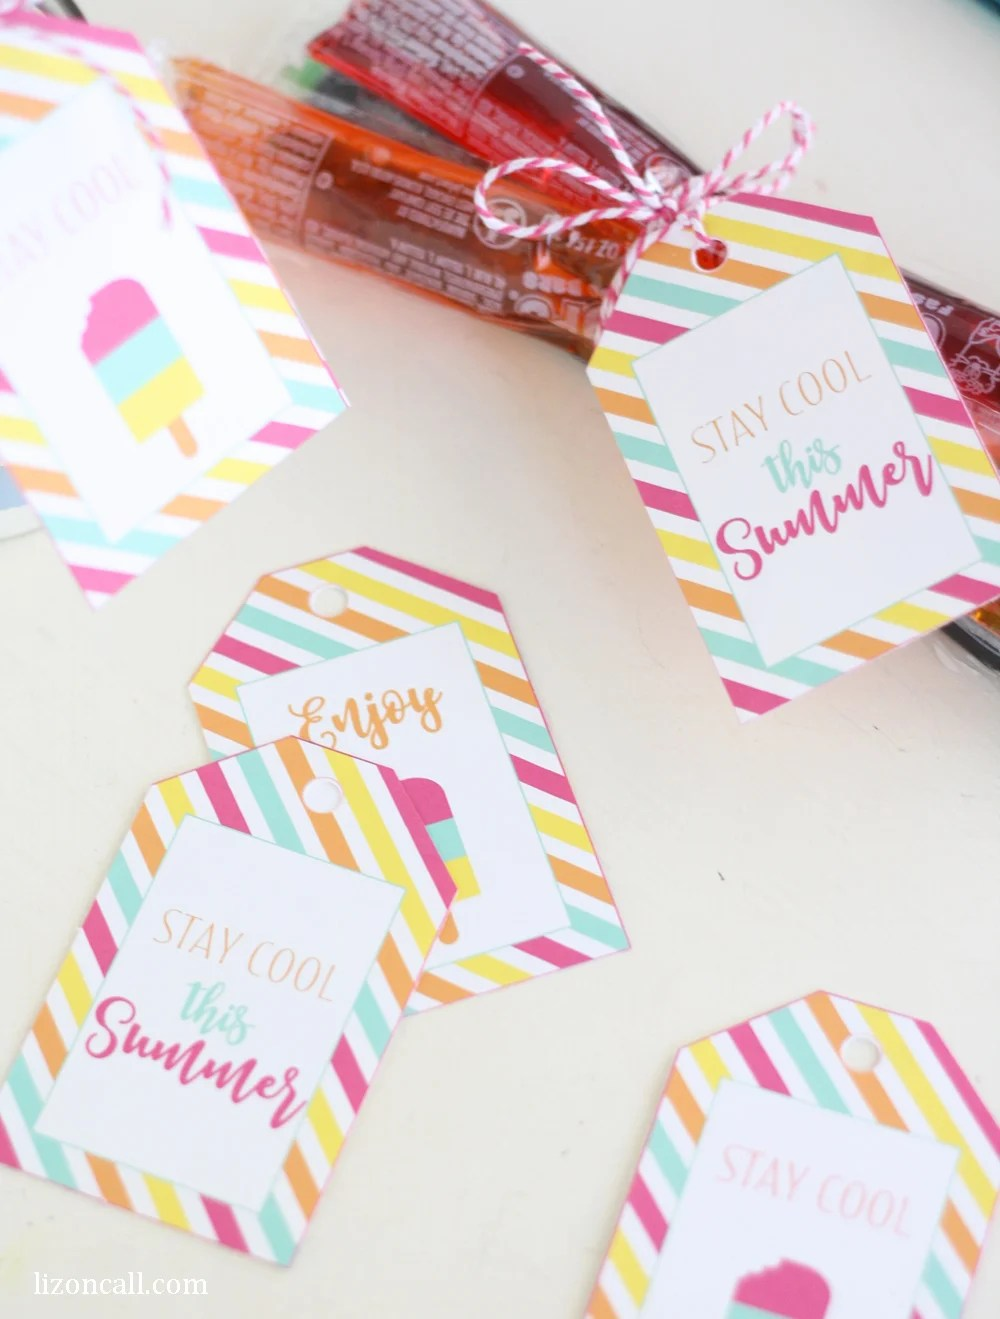 photo about Have a Cool Summer Printable named Totally free Printable Summer time Reward Tags - Printable Crush